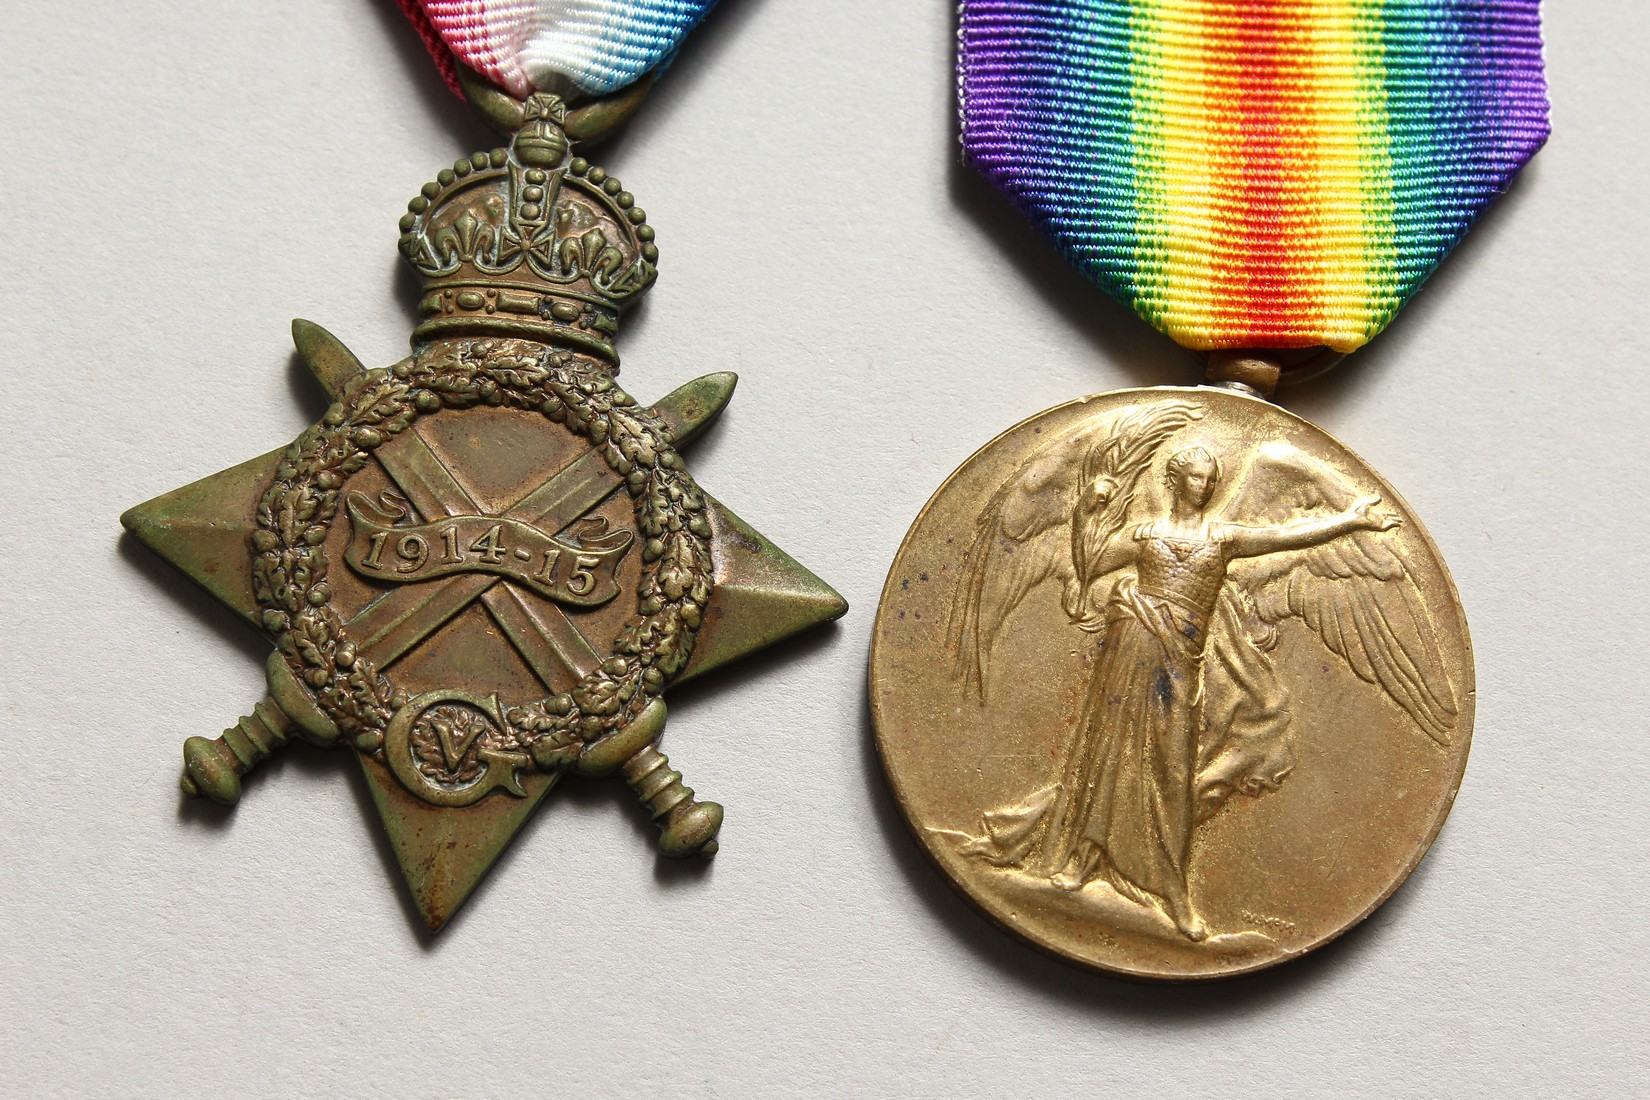 THE MEDALS OF ERNEST SELLINGS, 19 LONDON REG. 3454 610808. - Image 2 of 7